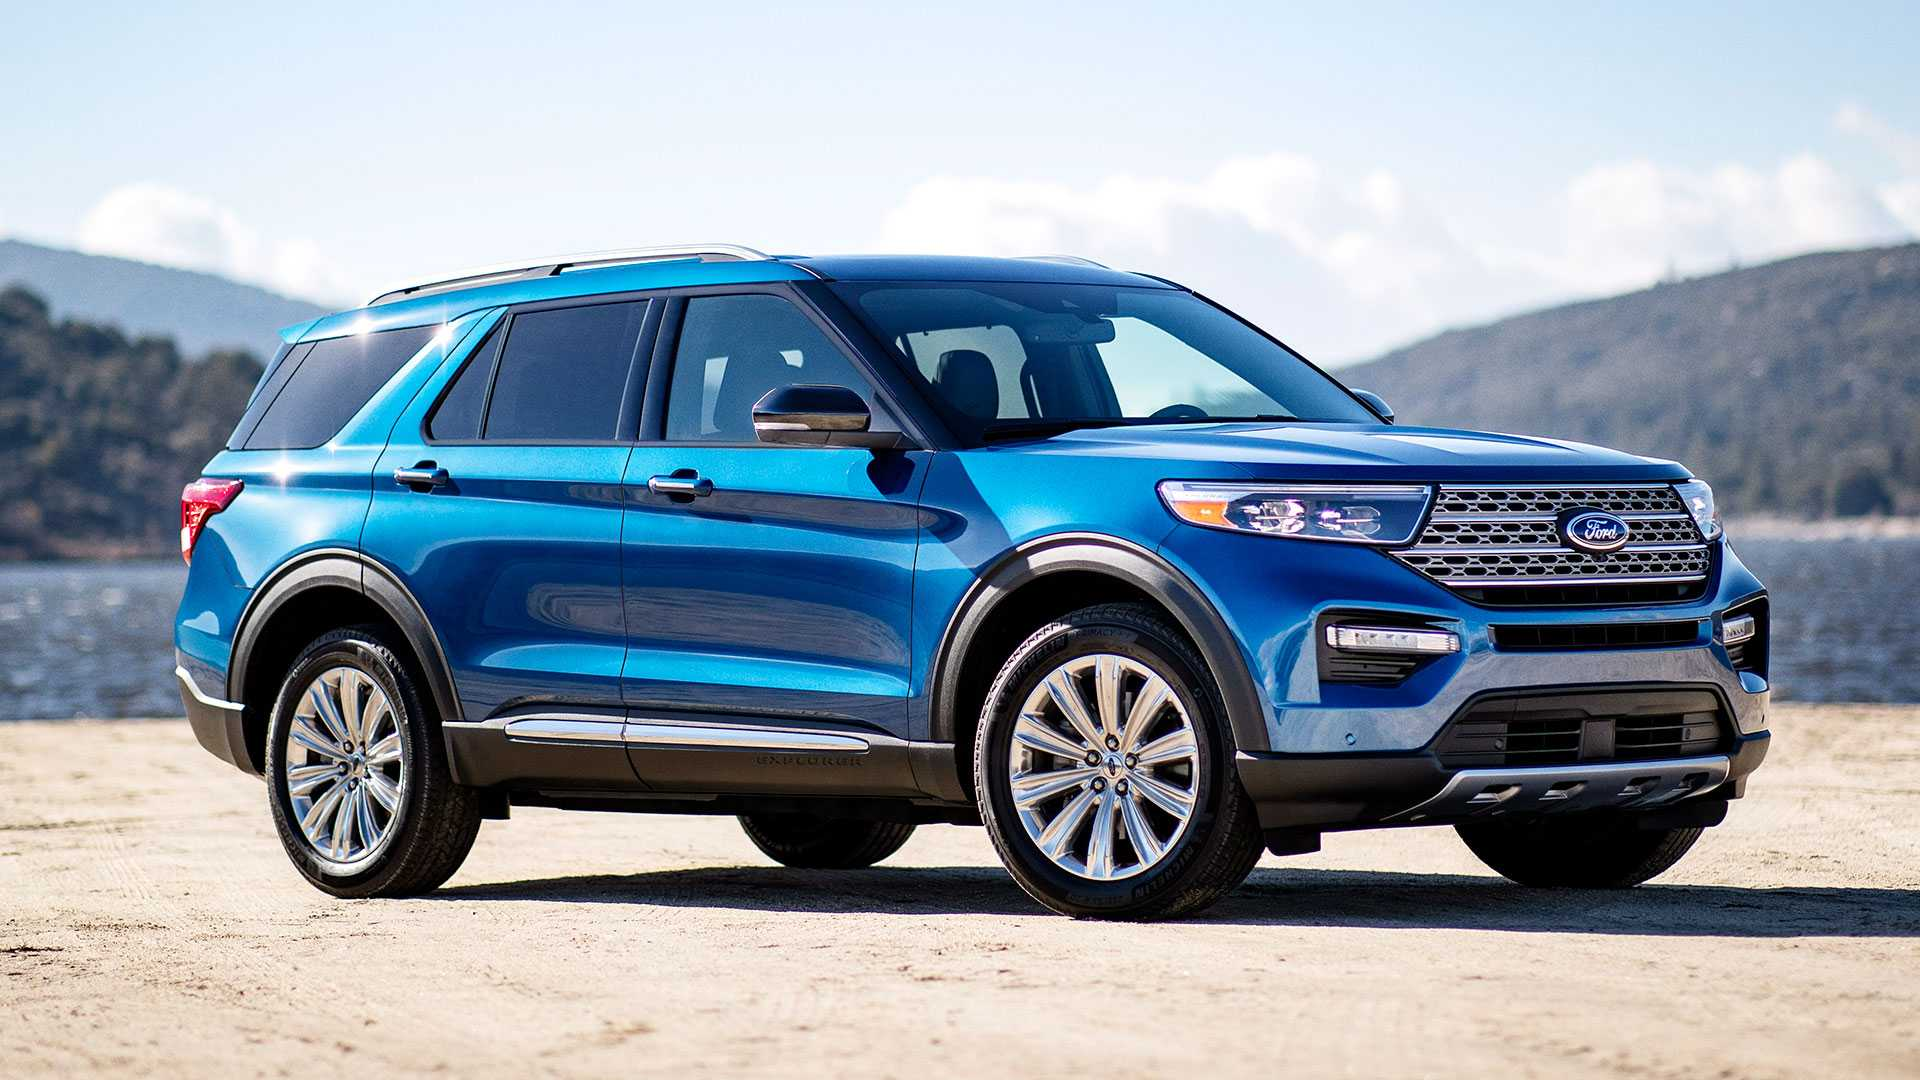 Ford Explorer 2020 Review.Ford Doubles 2020 Explorer Discount In A Matter Of Days